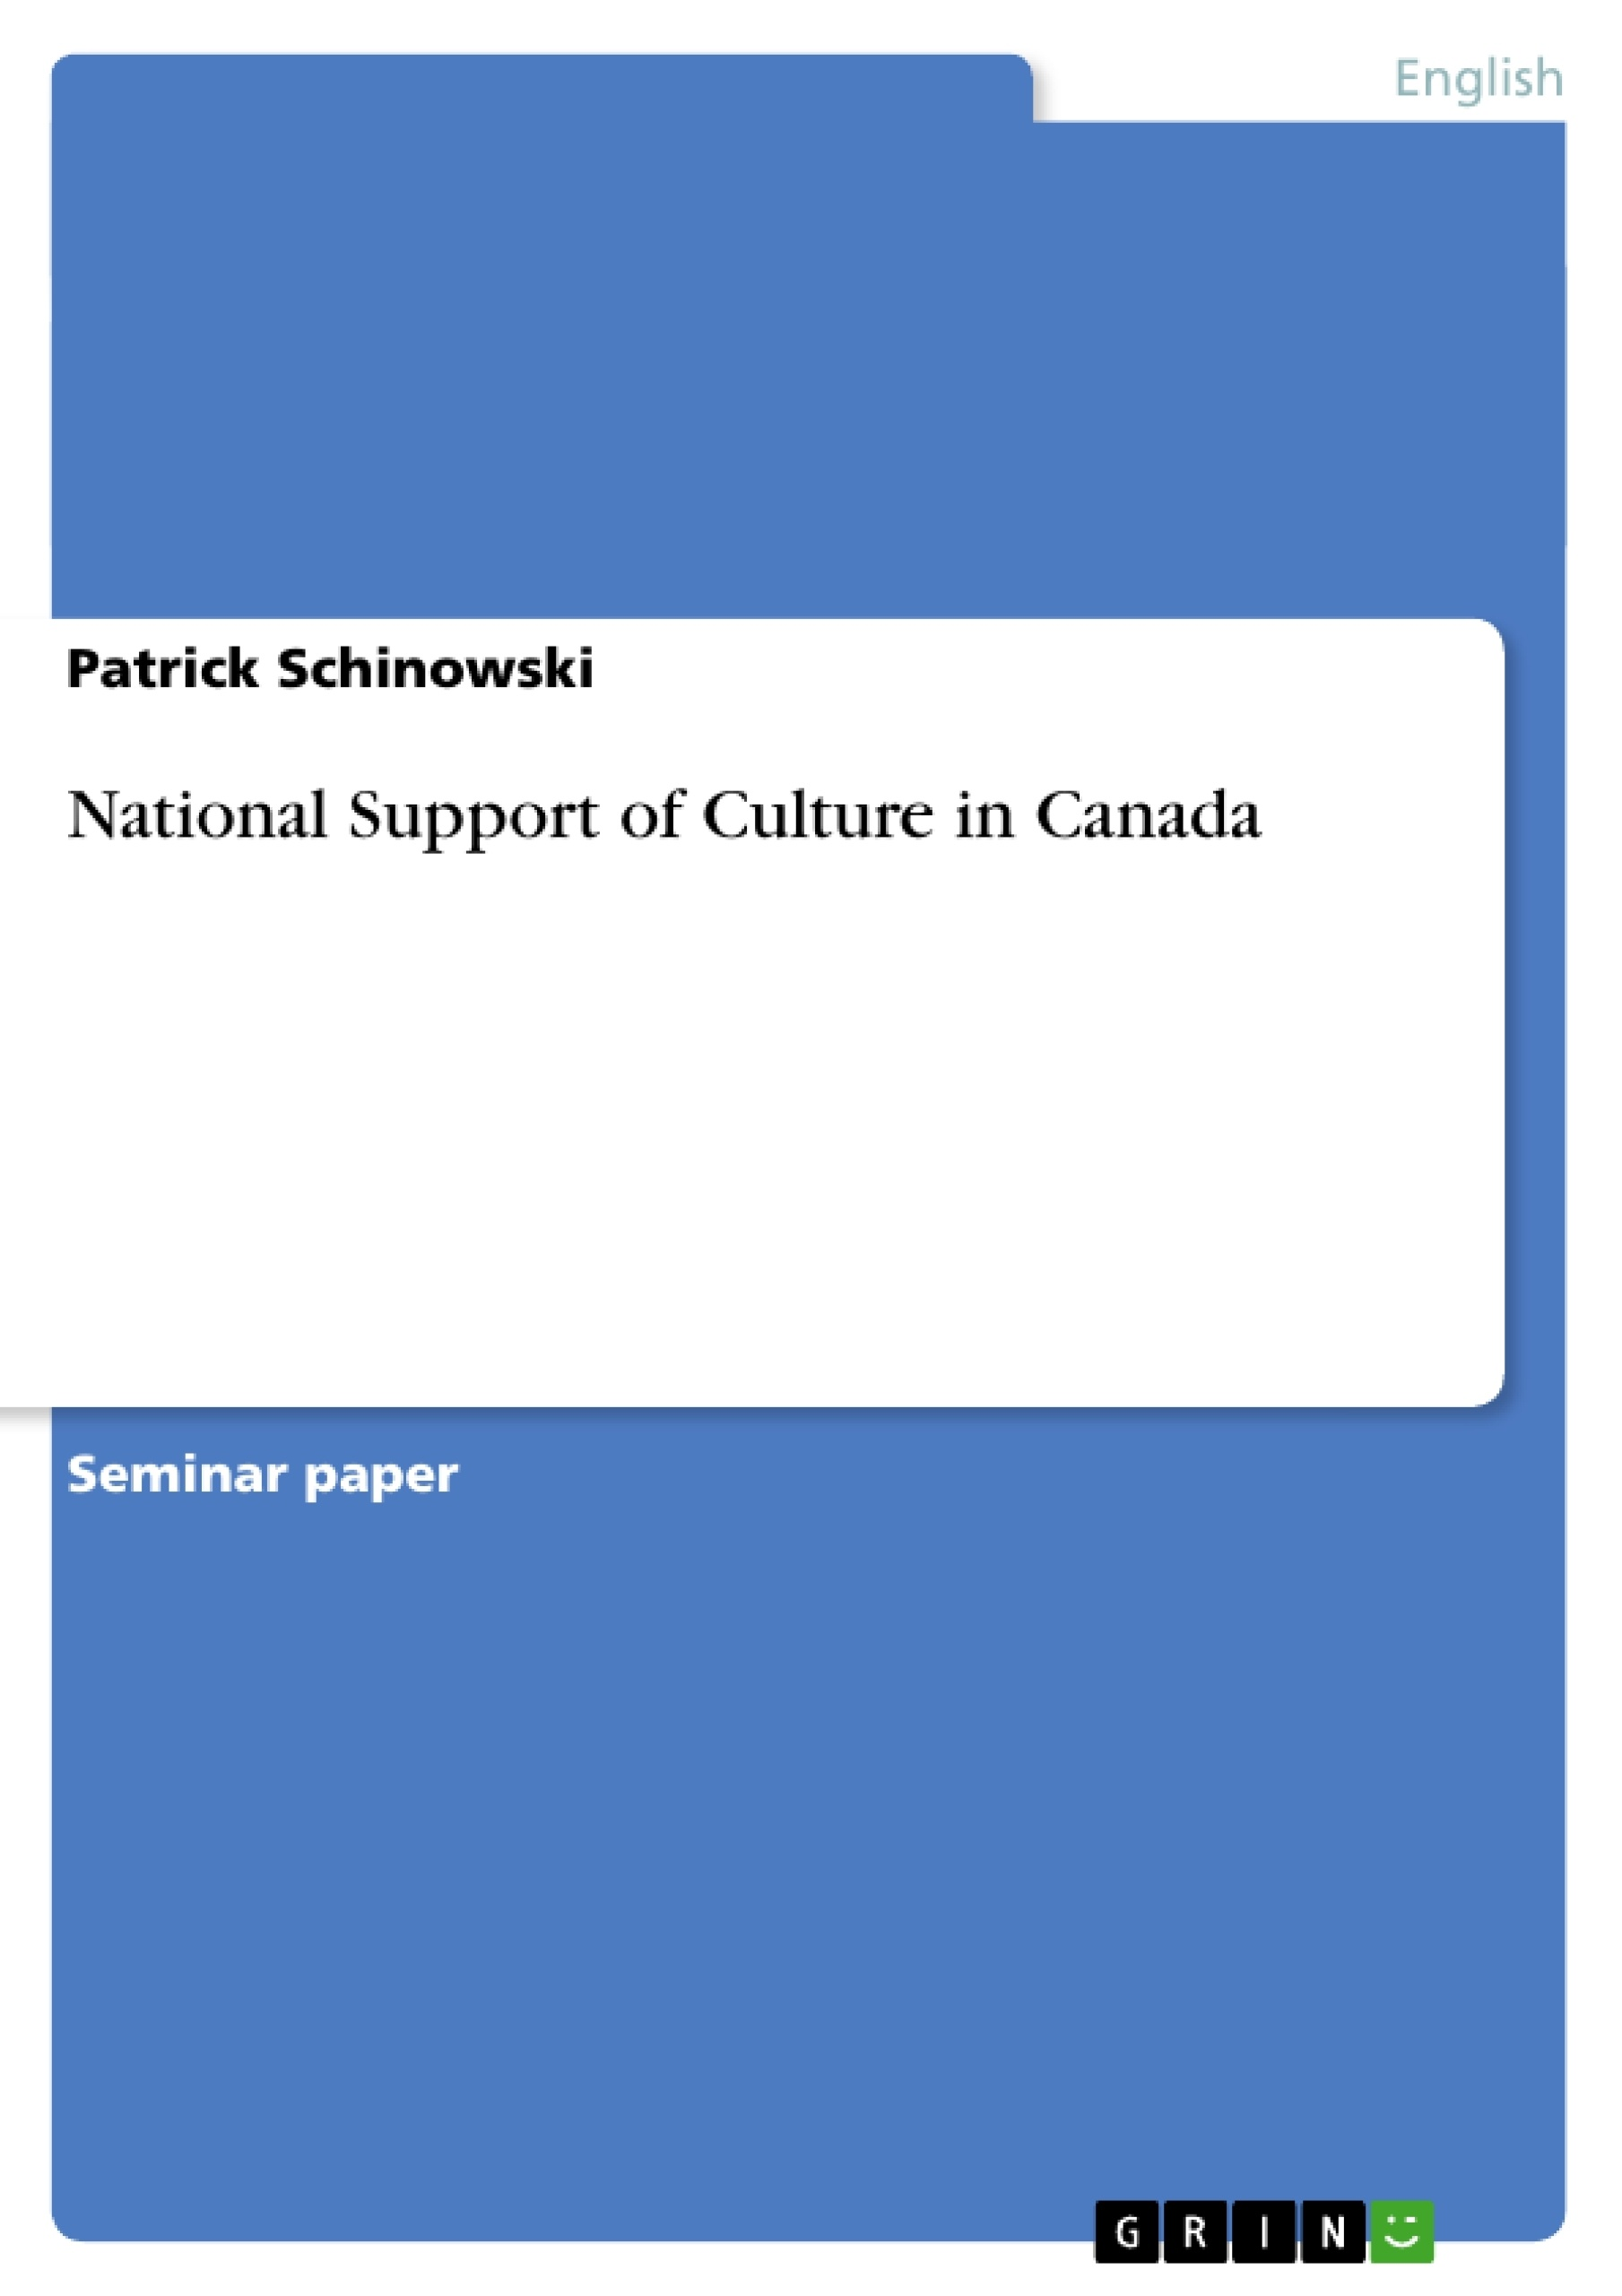 Title: National Support of Culture in Canada